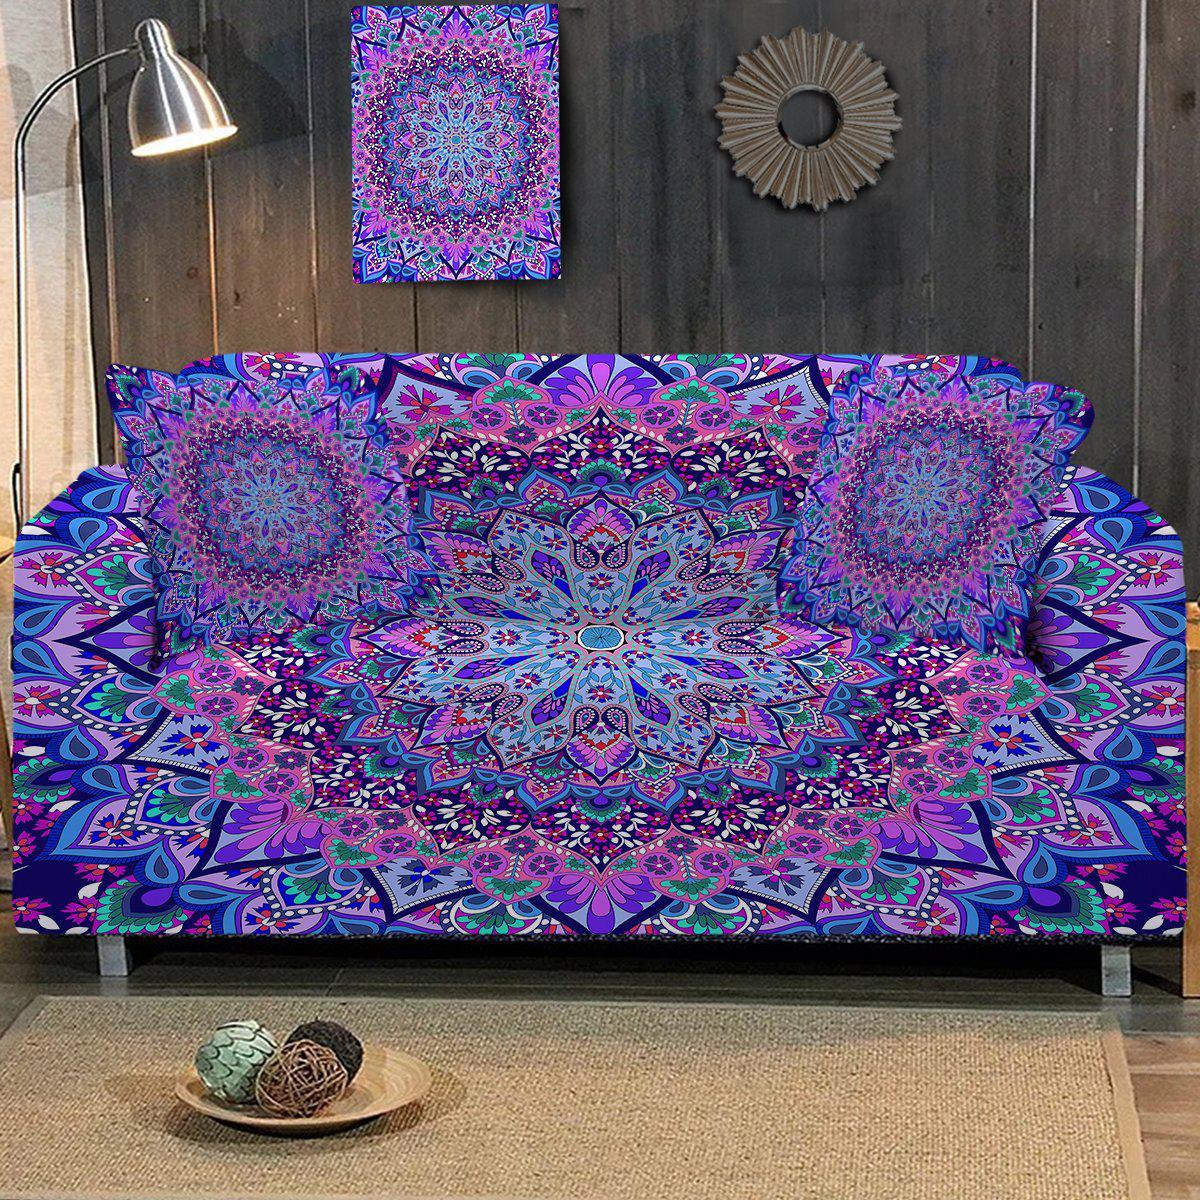 Sofa Slipcover-Cosmic Bohemian Couch Cover-Coastal Passion